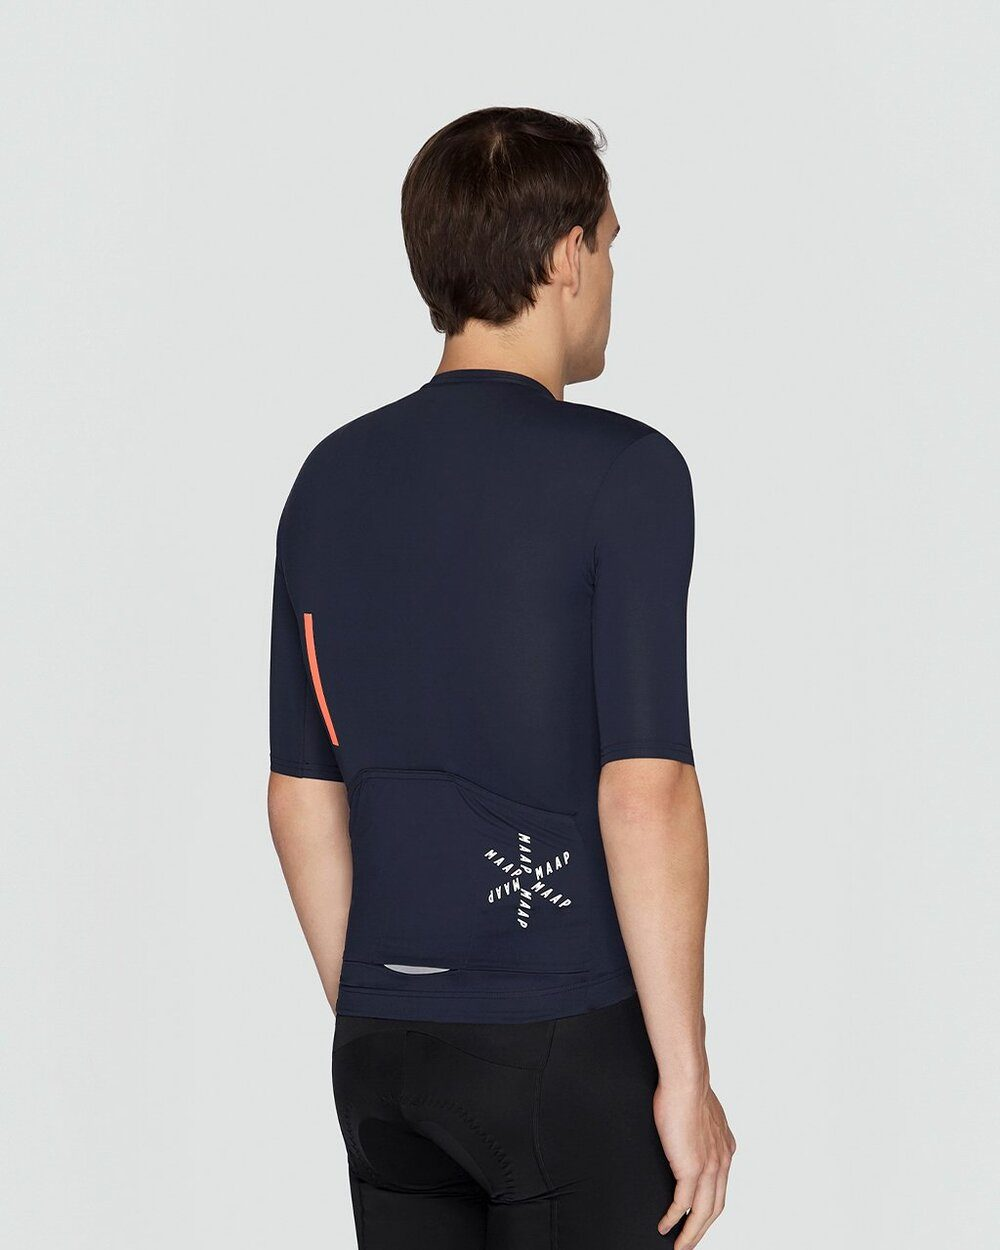 Training Jersey - Navy Cycling Jersey MAAP